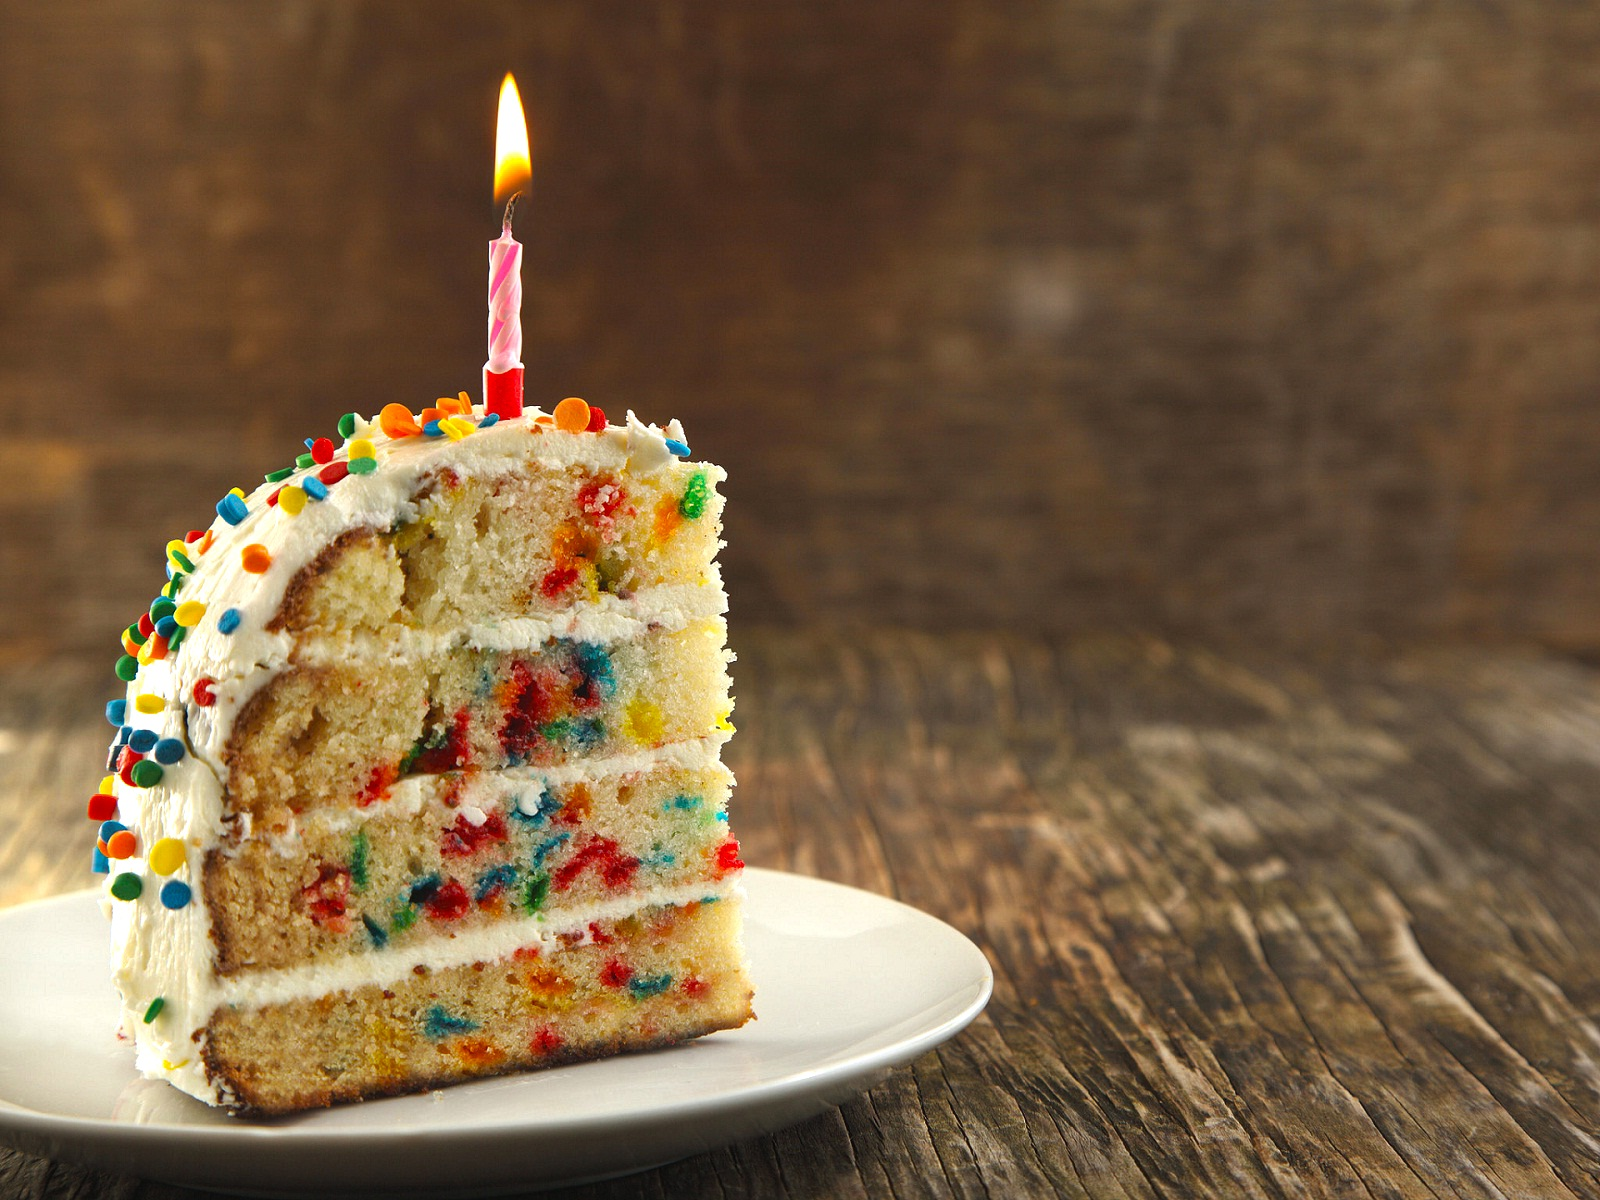 Sweet Birthday Cake Hd Images : happy-birthday-cake-hd-wallpaper - The Resilience Post